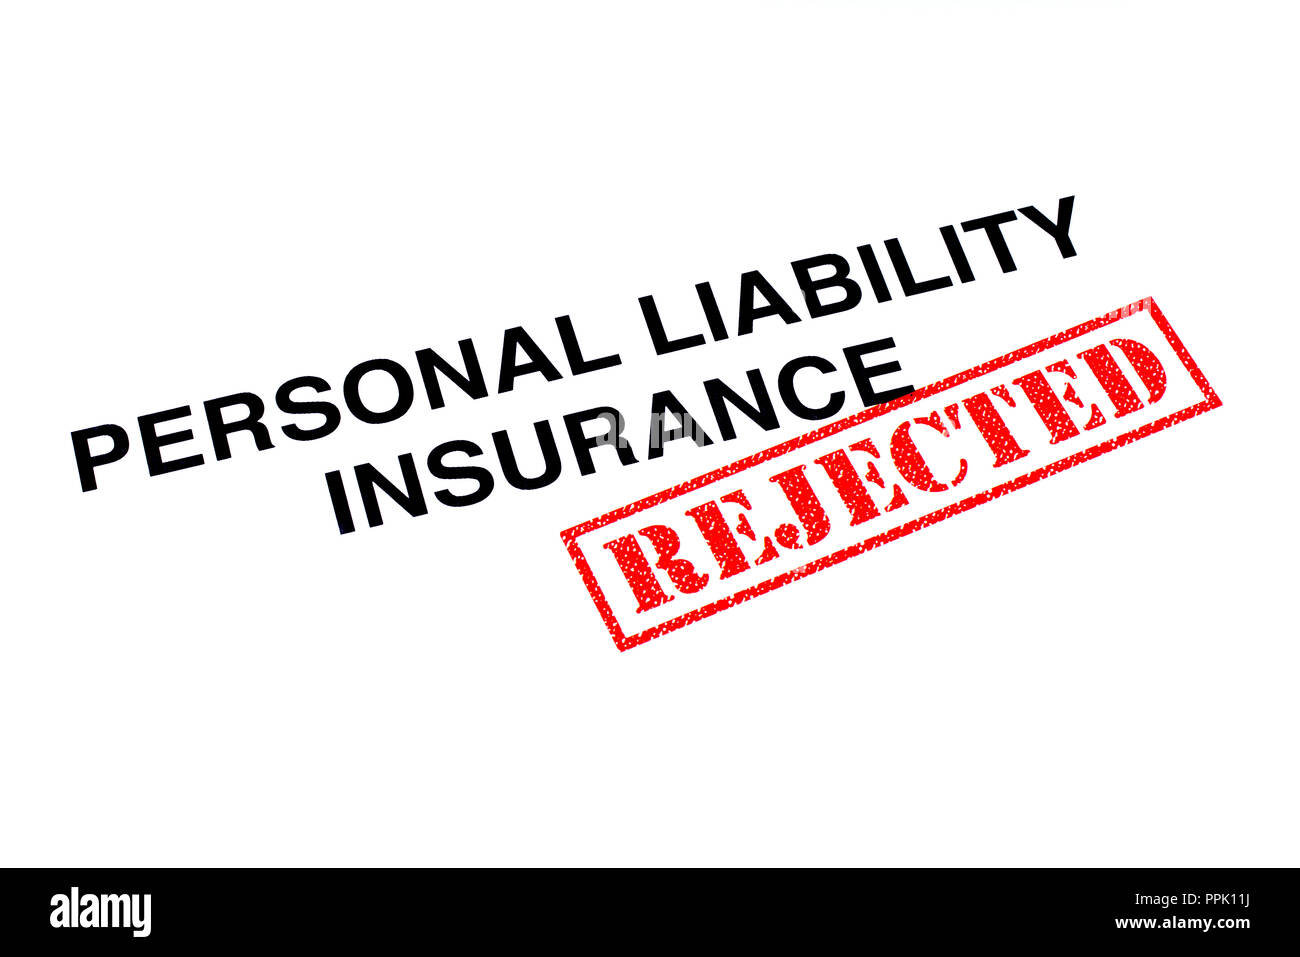 A Personal Liability Insurance heading stamped with a red REJECTED rubber stamp. - Stock Image